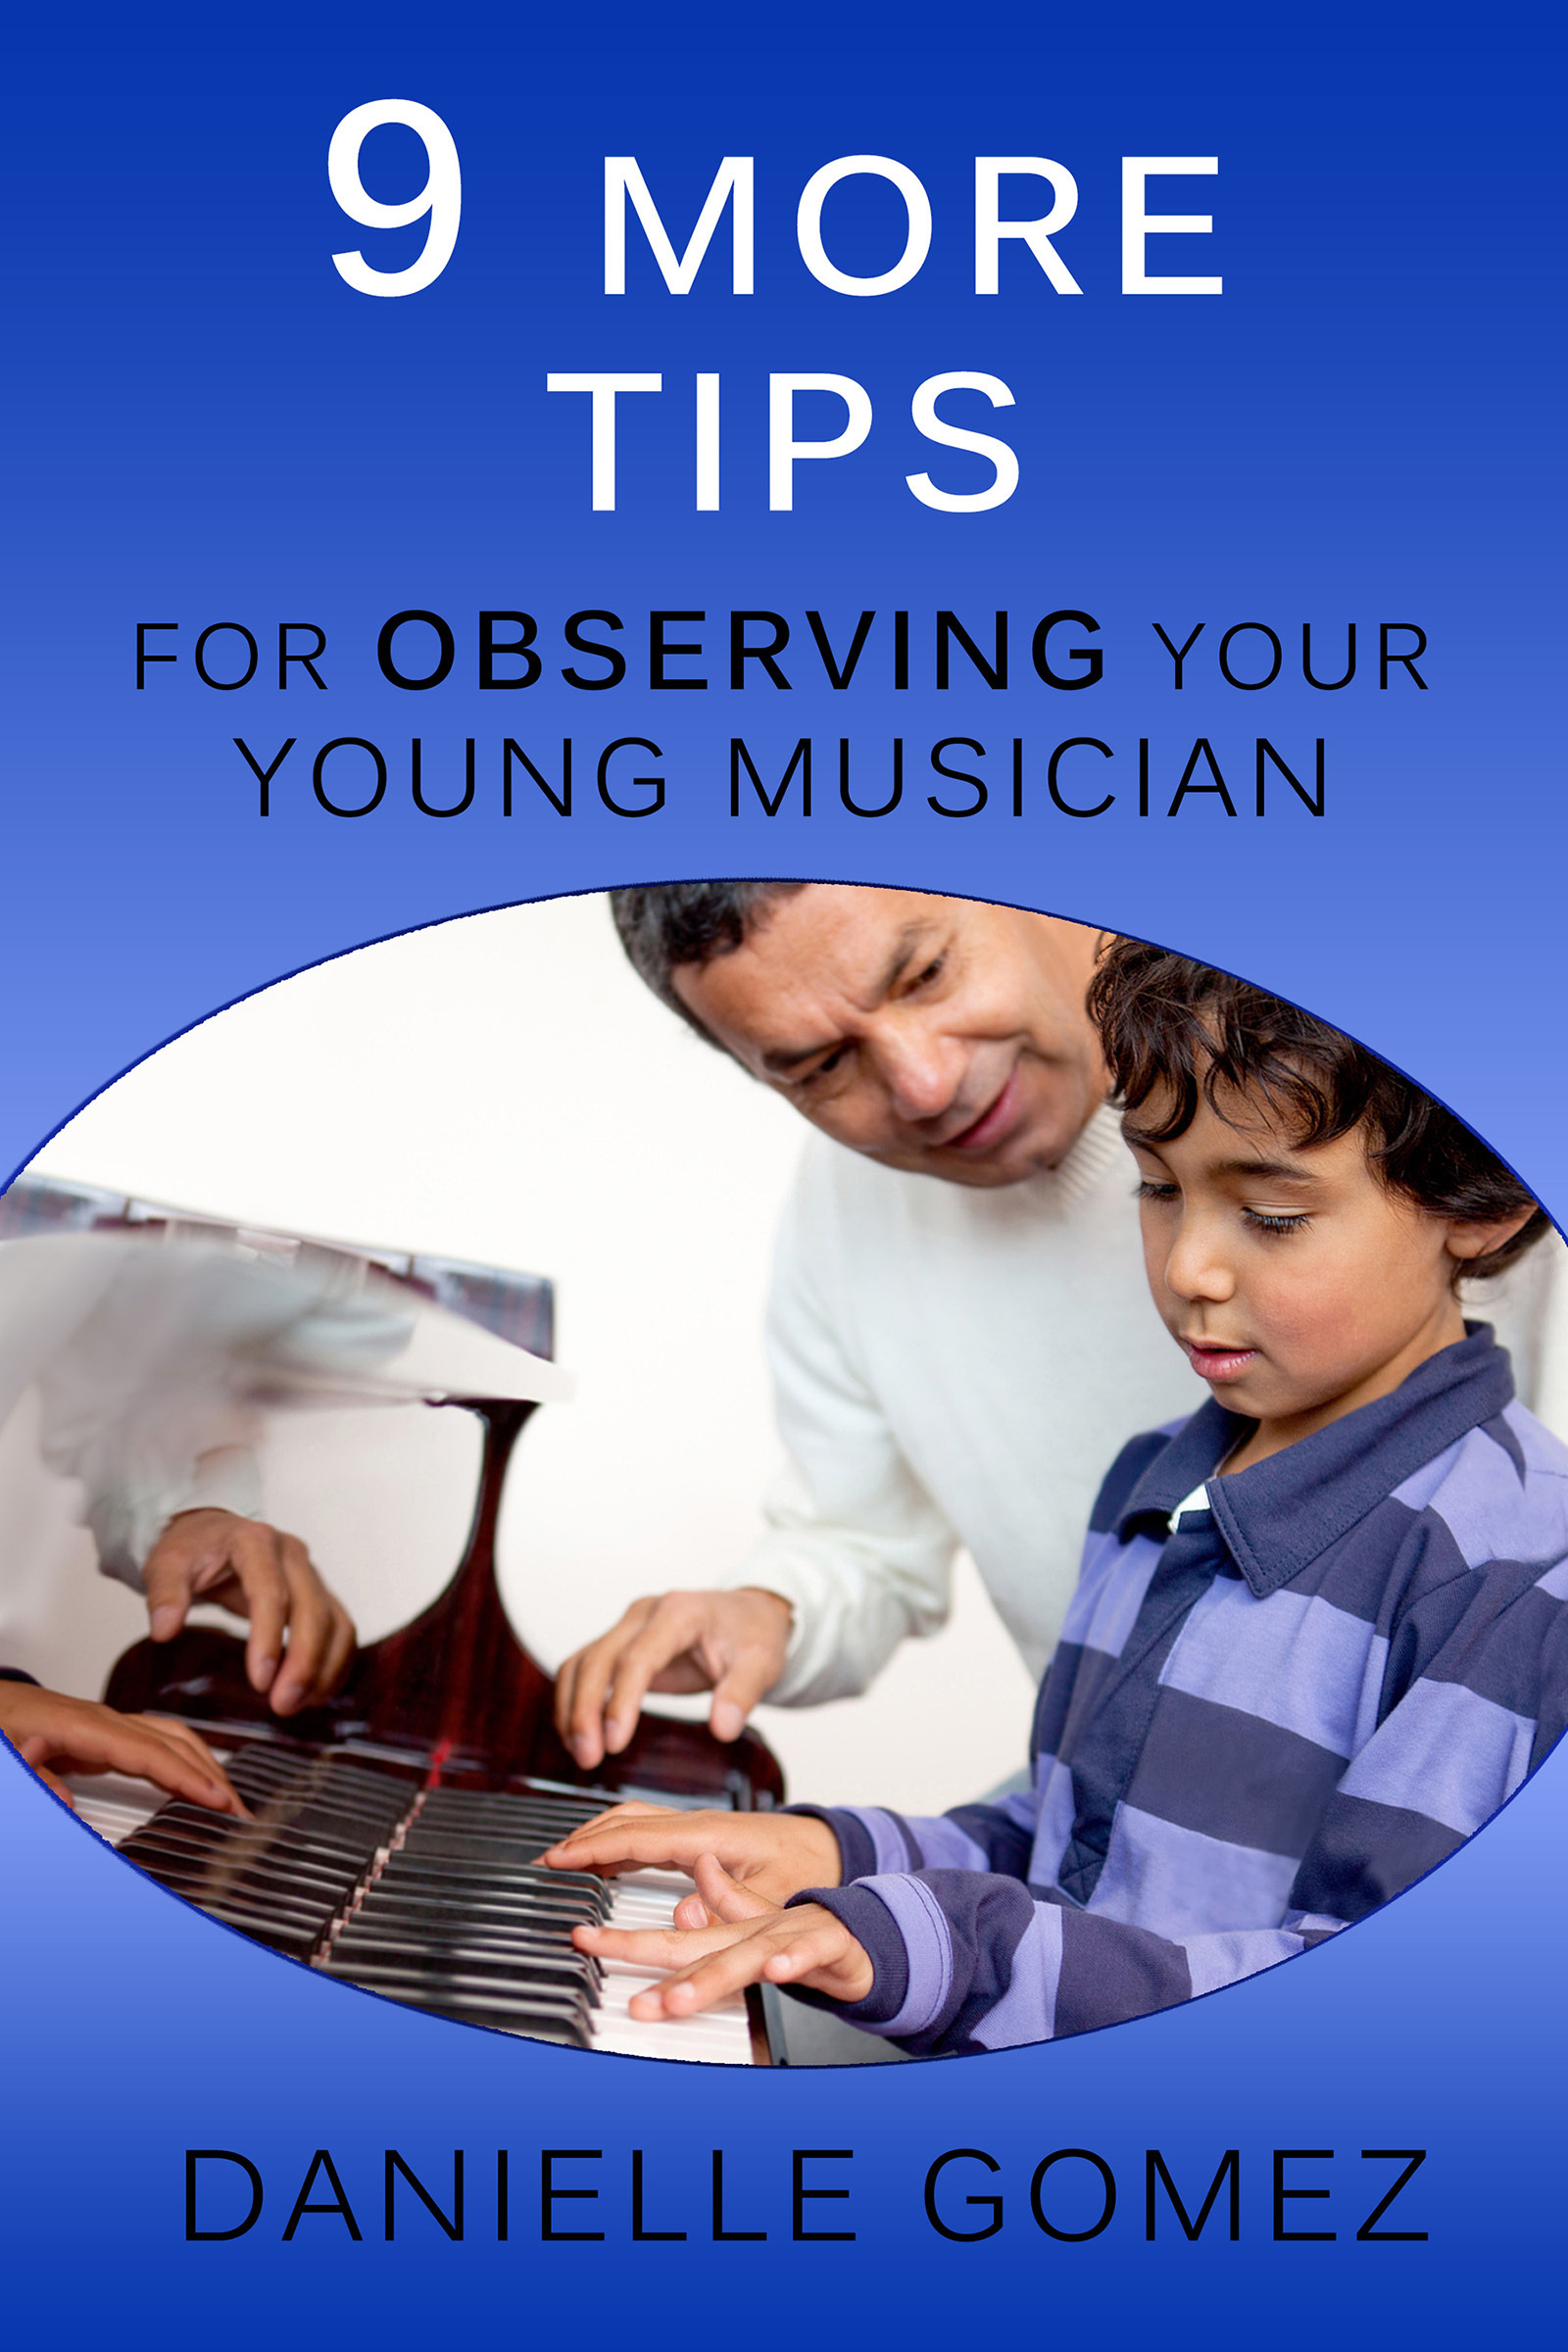 9 More Tips for Observing Your Young Musician Danielle Gomez